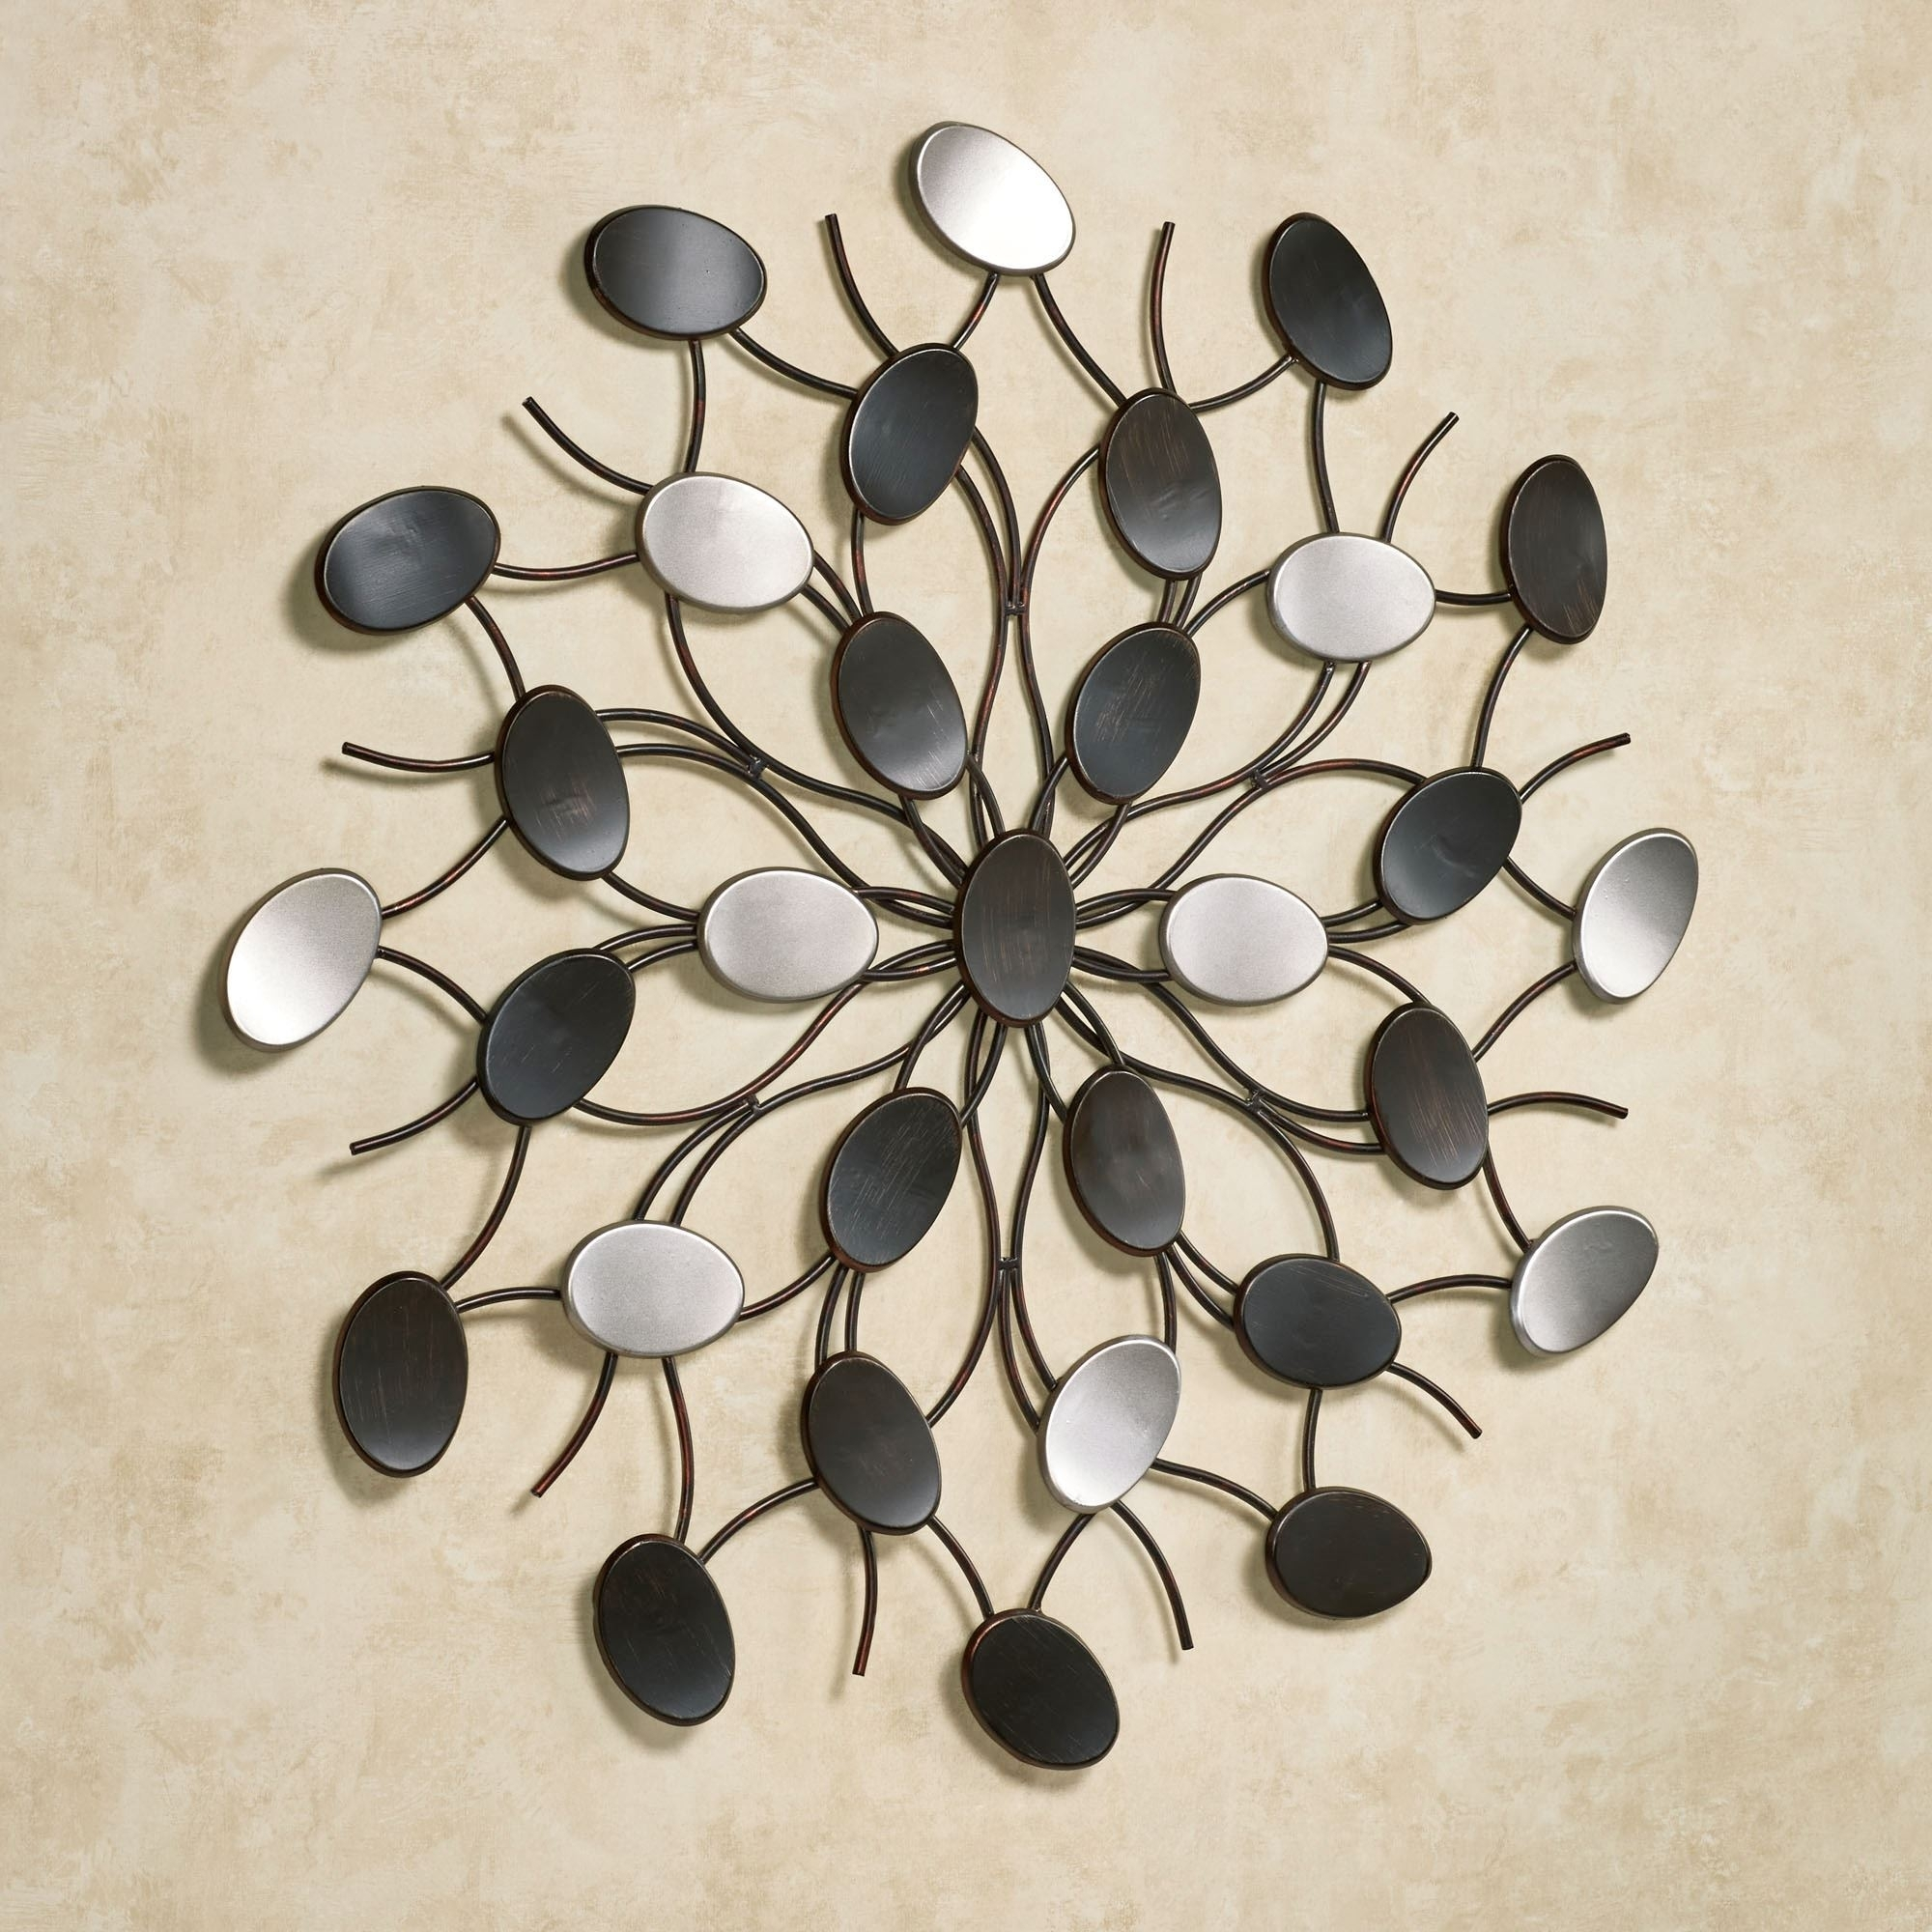 Radiant Petals Abstract Metal Wall Art with regard to Metal Wall Art (Image 17 of 20)